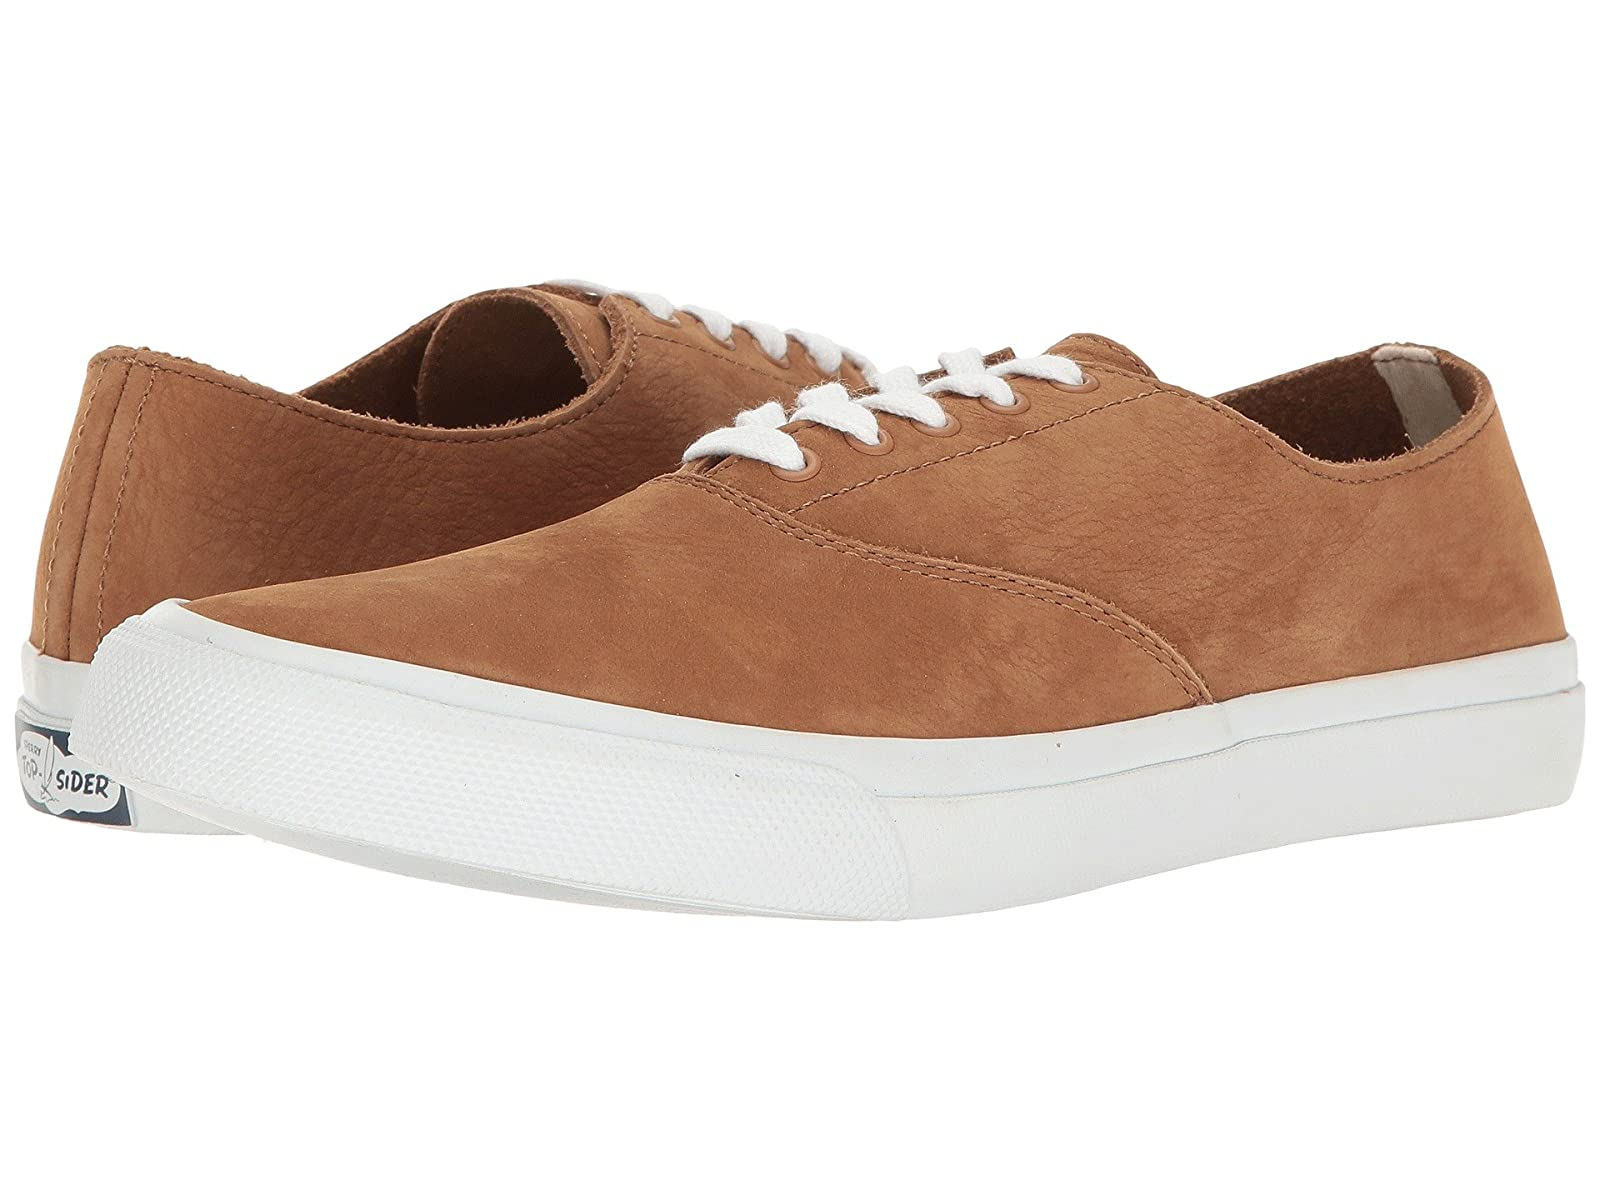 Sperry Cloud CVO NubuckCheap and distinctive eye-catching shoes